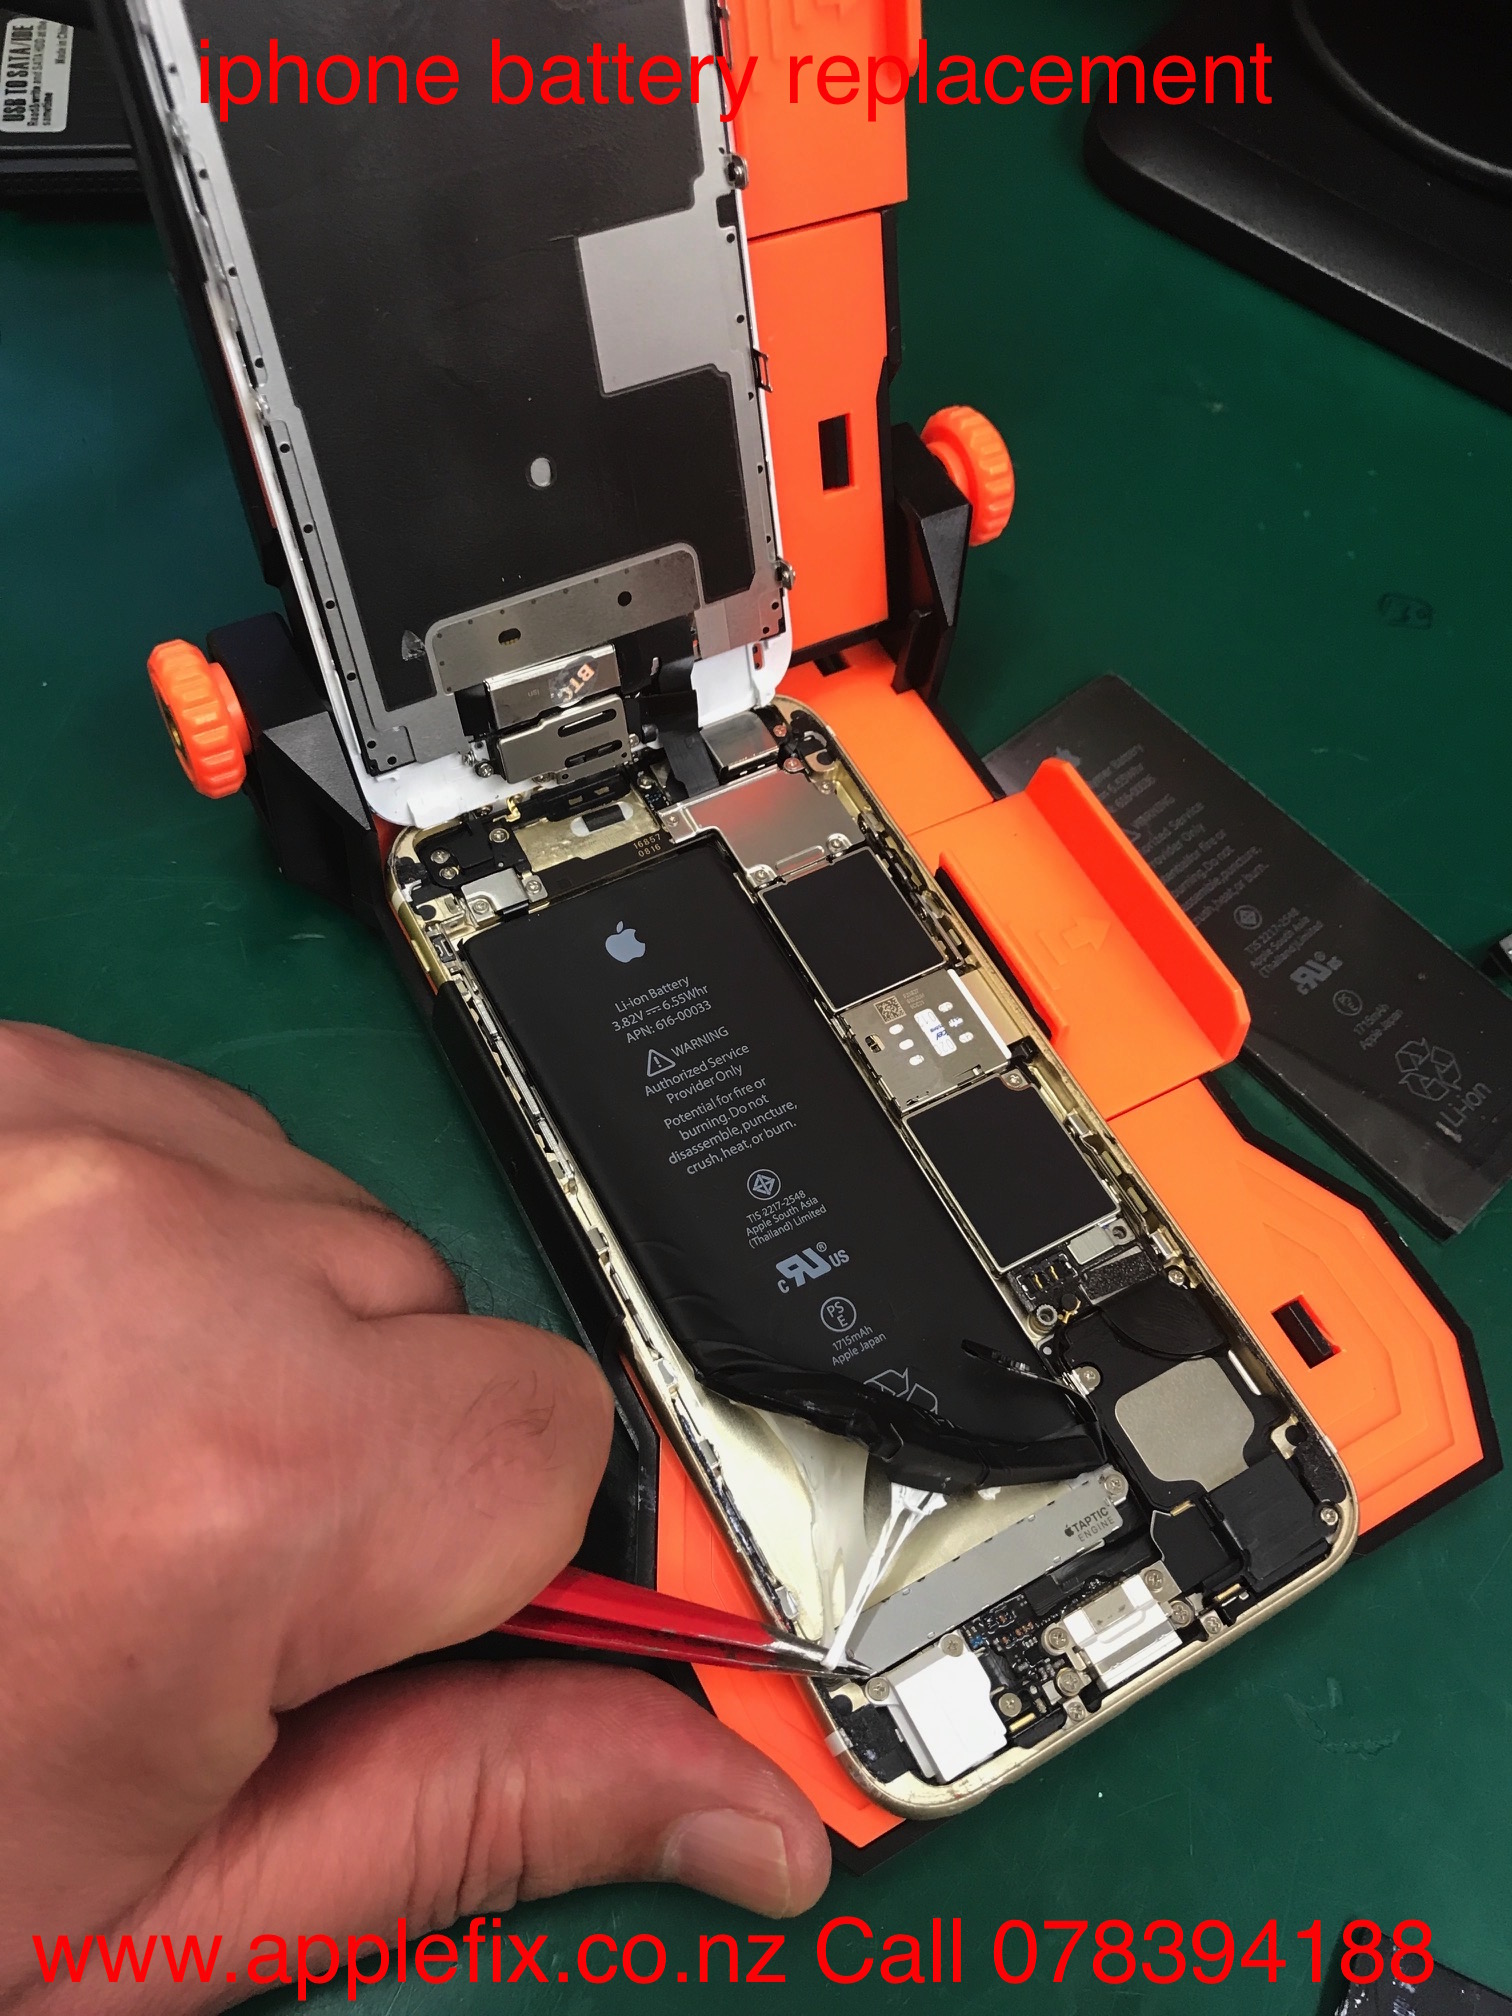 iPhone battery replacement hamilton